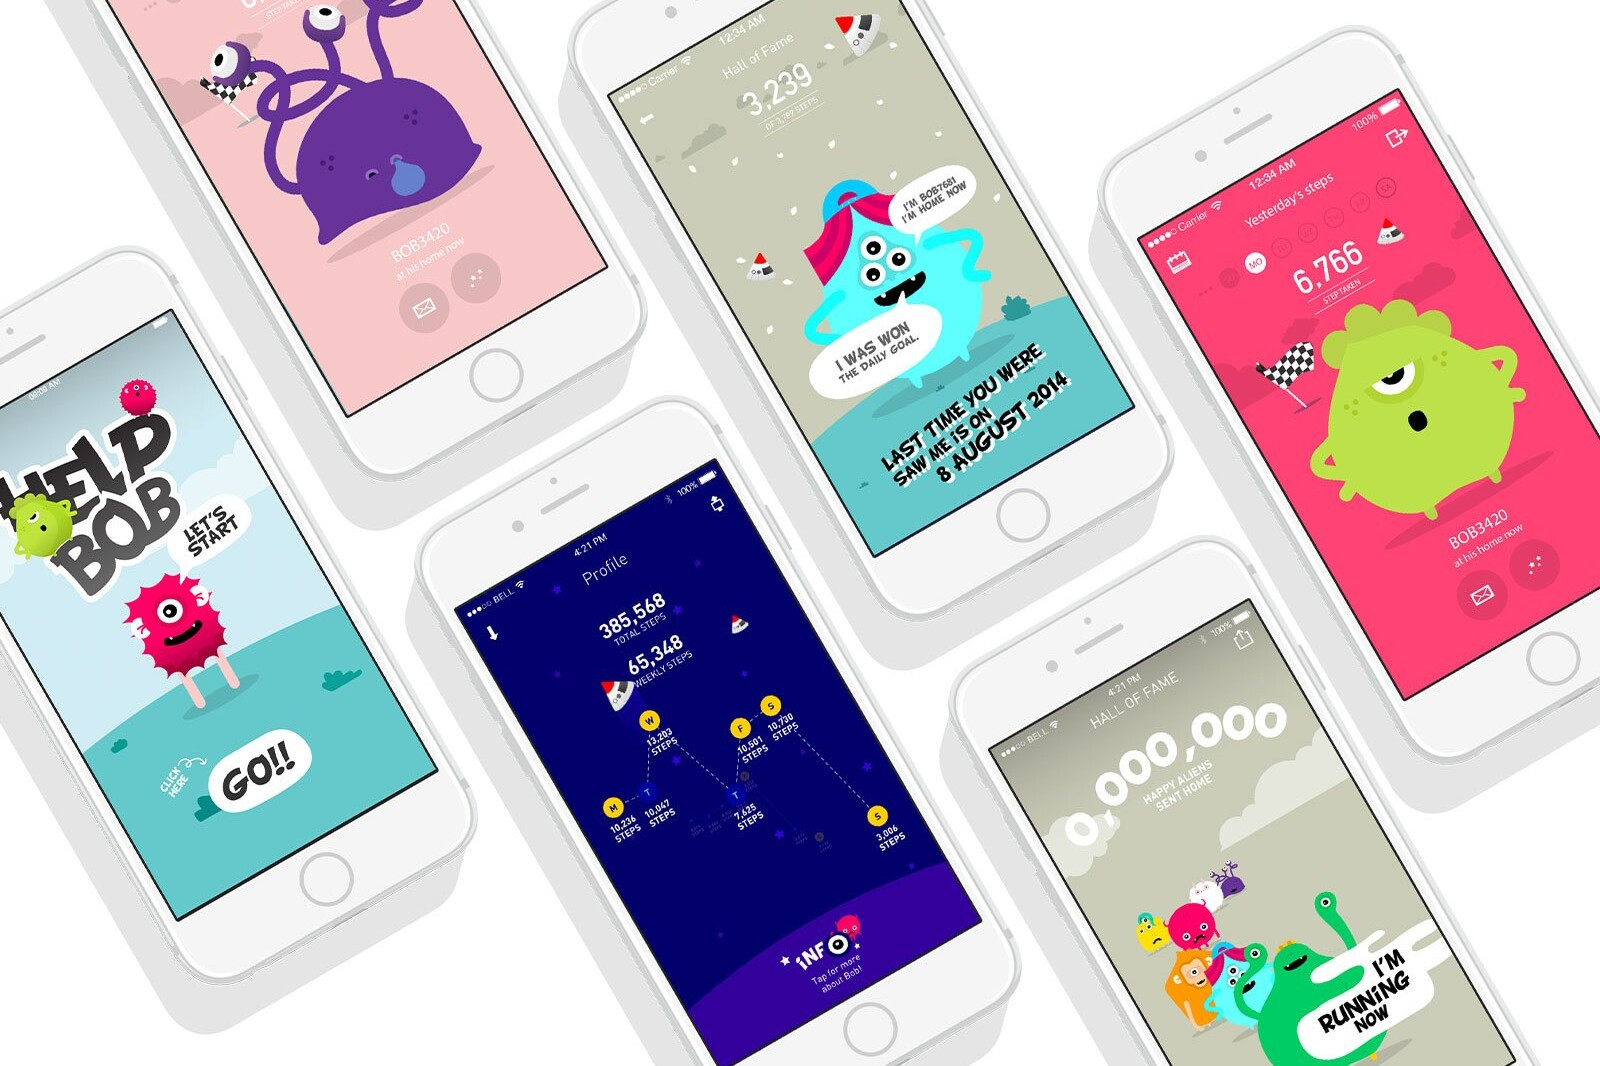 wlw-future-app-mobile-design-essex-london